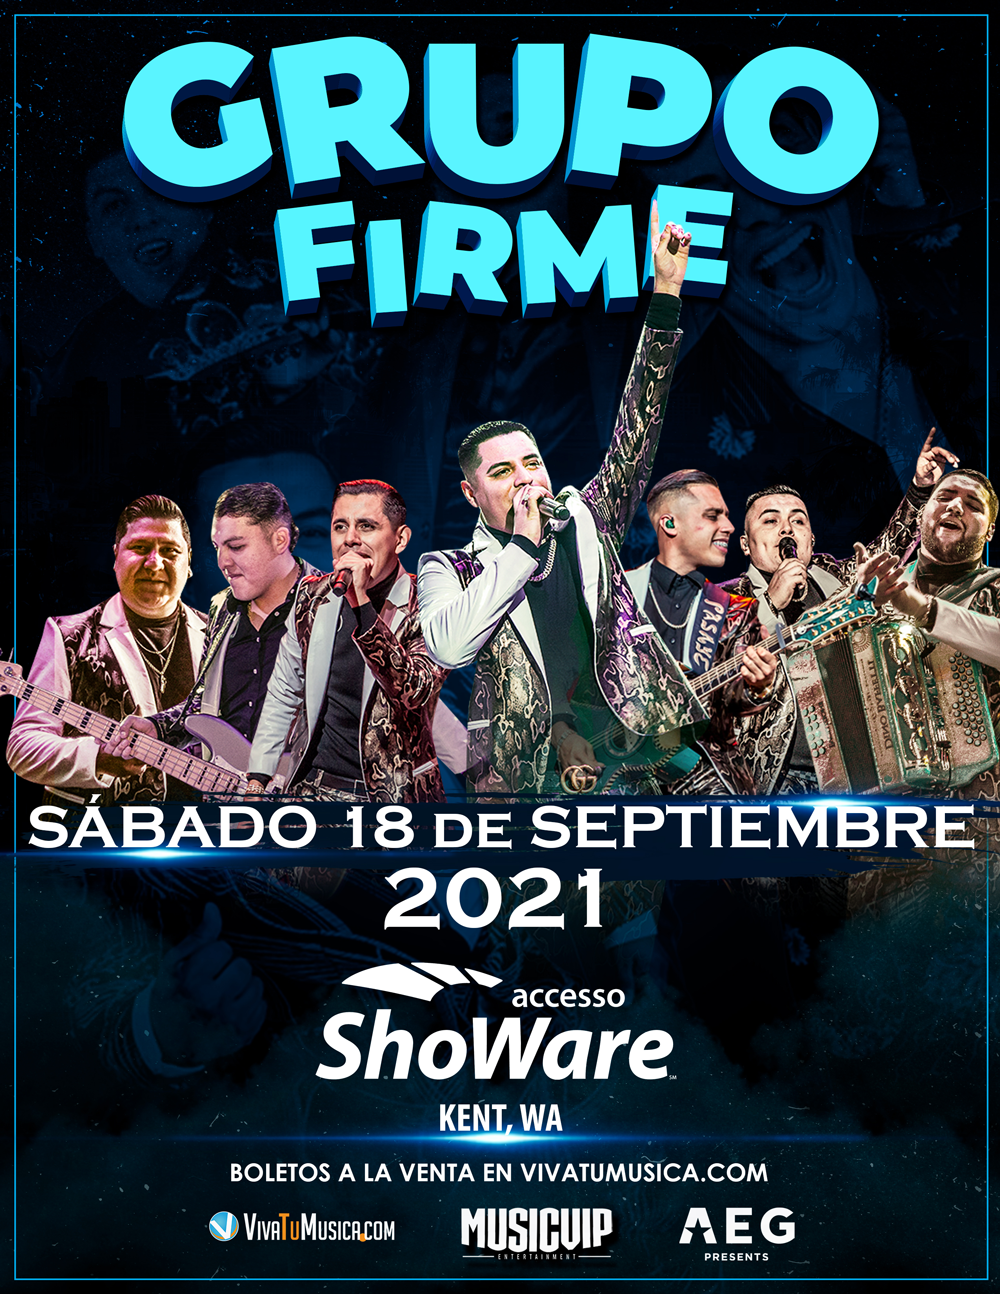 Grupo Firme - Accesso ShoWare Center @ Kent, WA | Rosemont | Illinois | United States